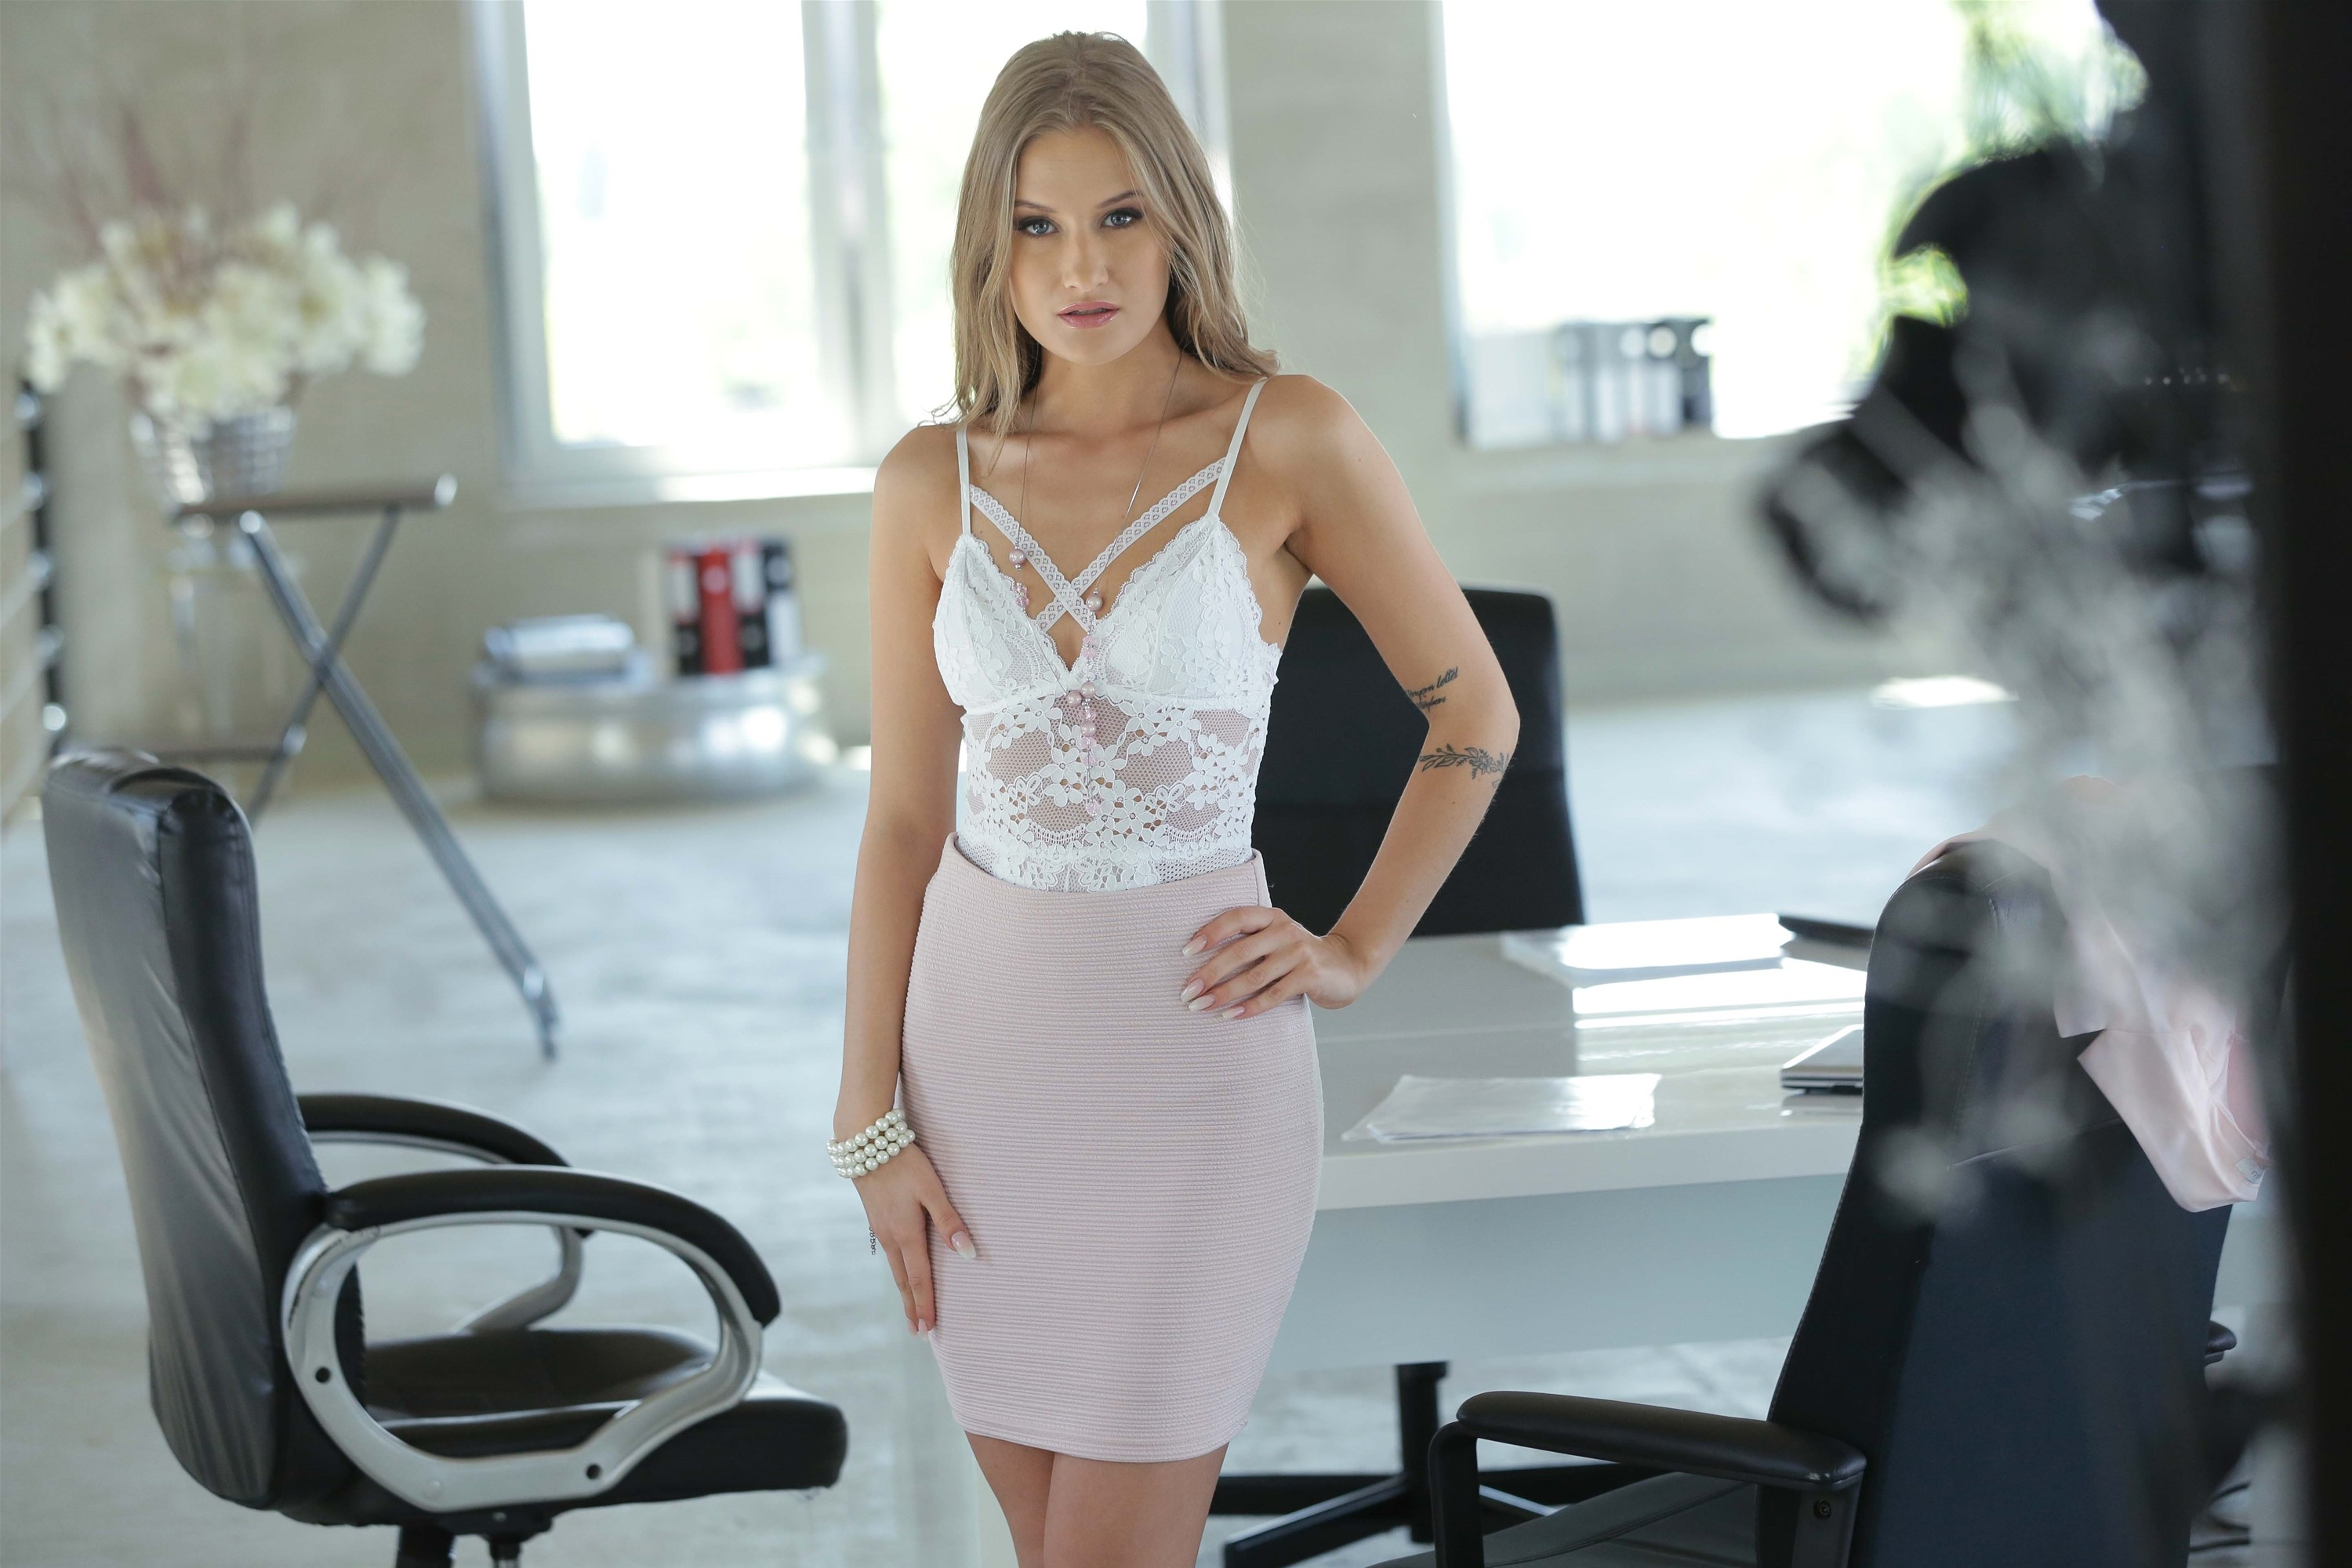 Lucy, The New Secretary - Marc Dorcel Image Gallery Photos